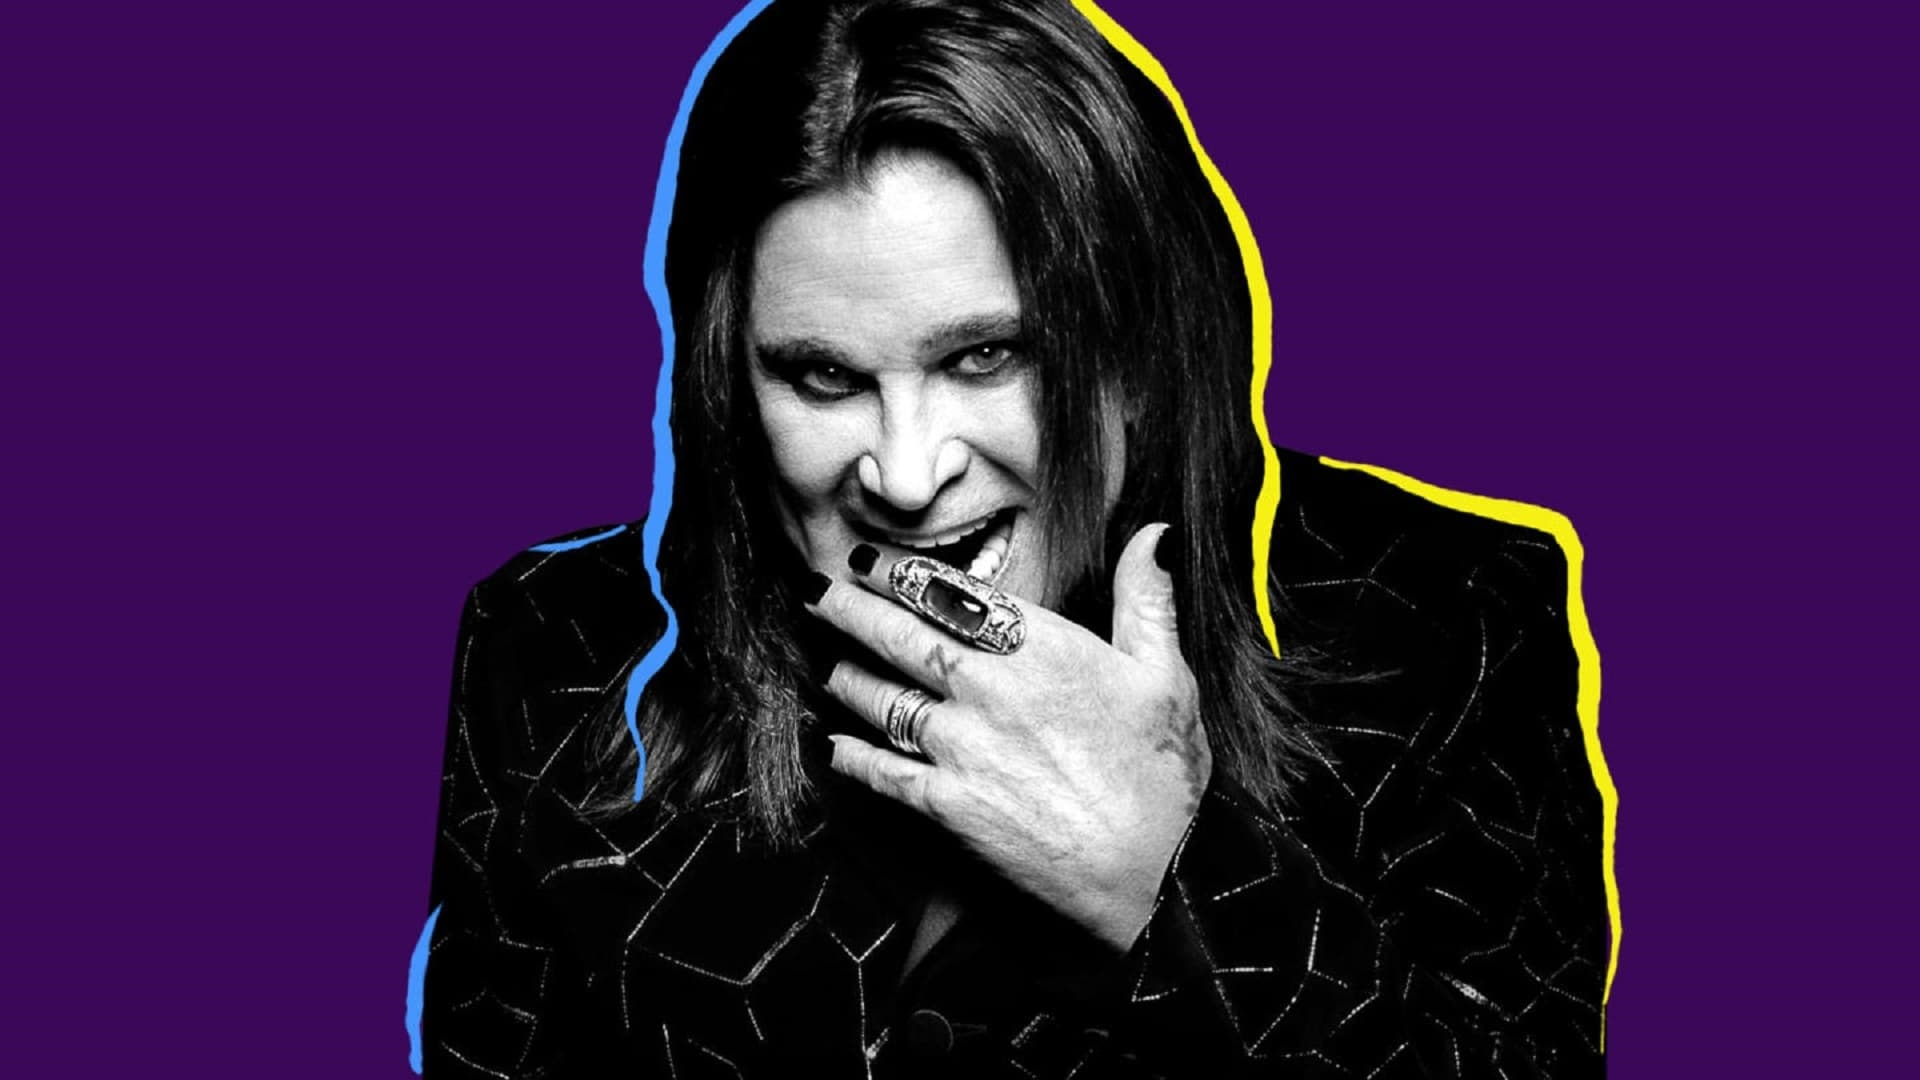 Biography: The Nine Lives of Ozzy Osbourne